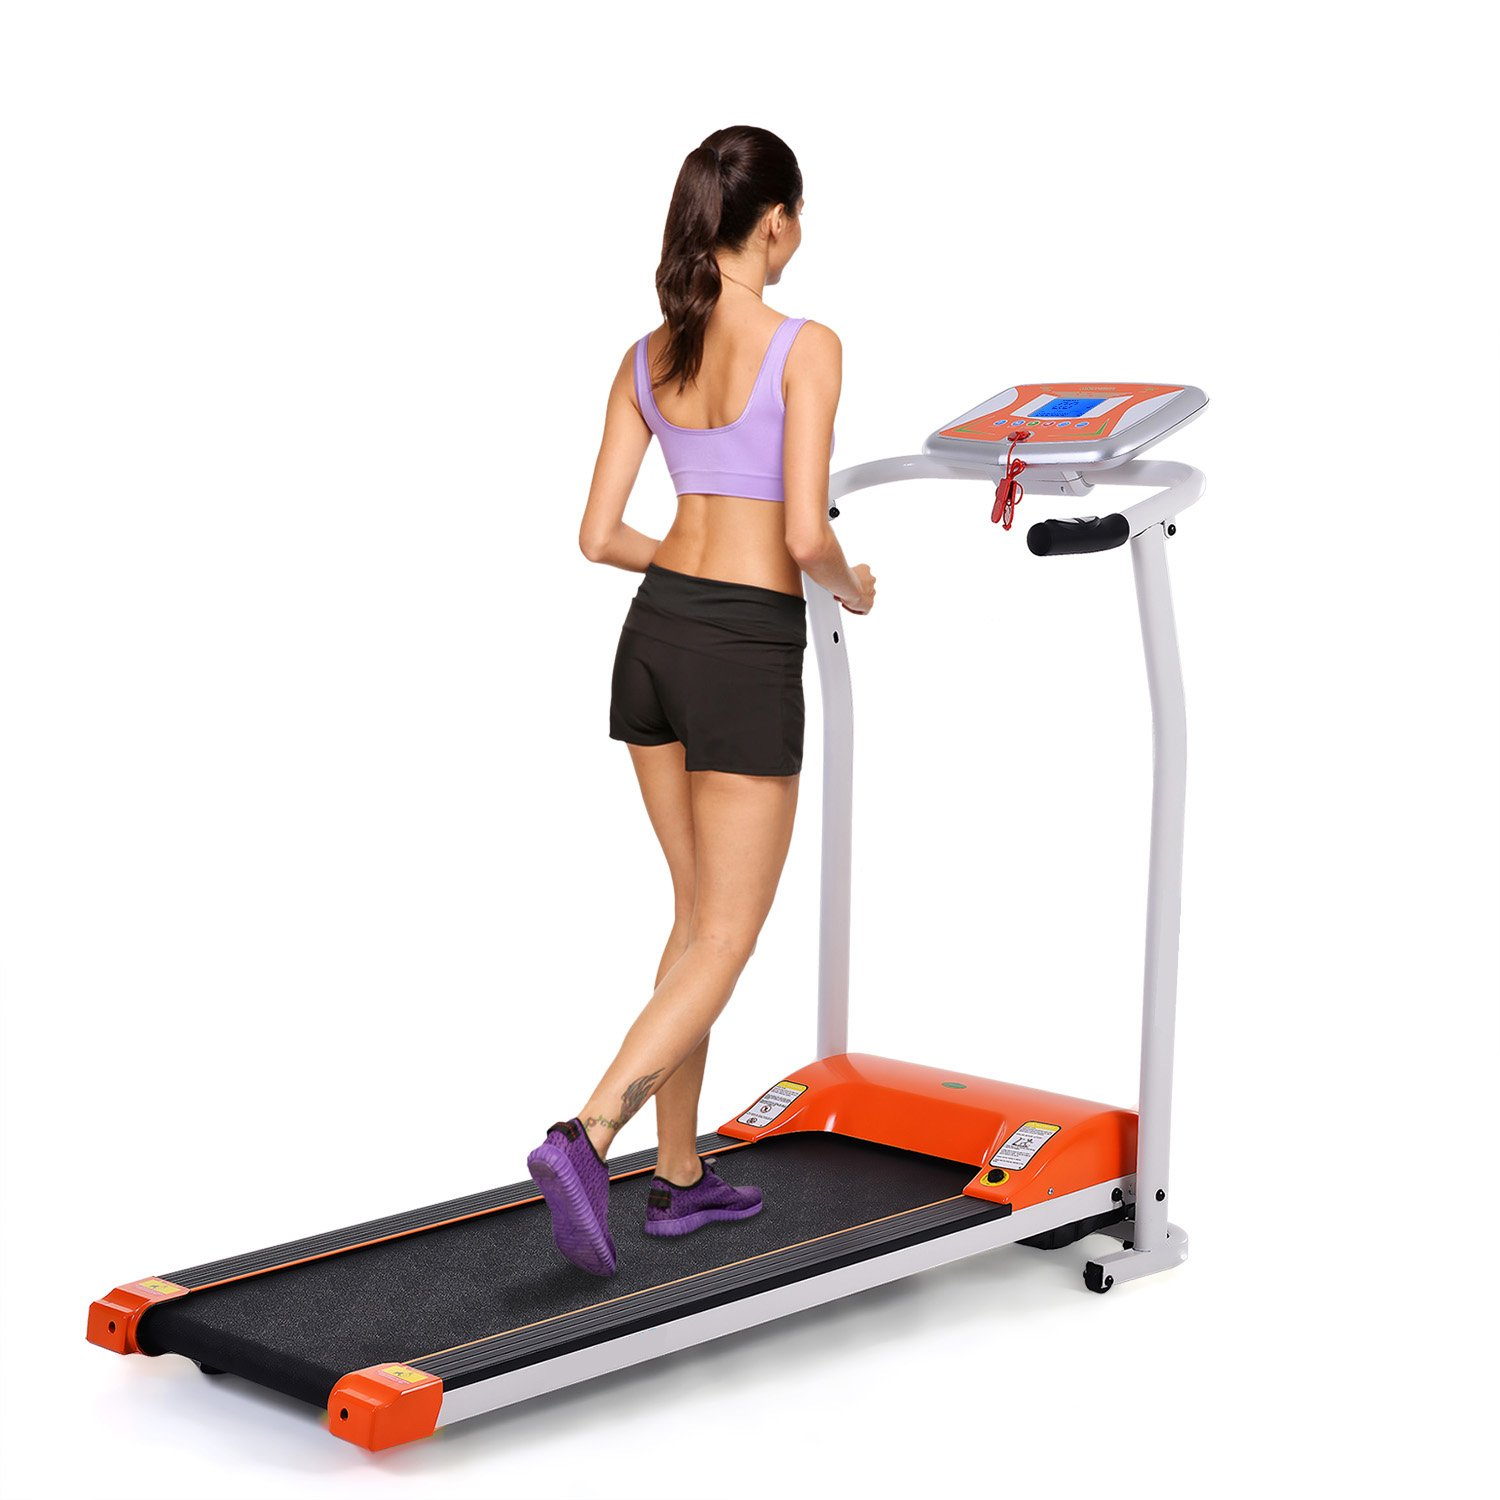 running home office. Eshion Mini Folding Electric Treadmill, Easy Assembly Motorized Running Machine For Home Office R